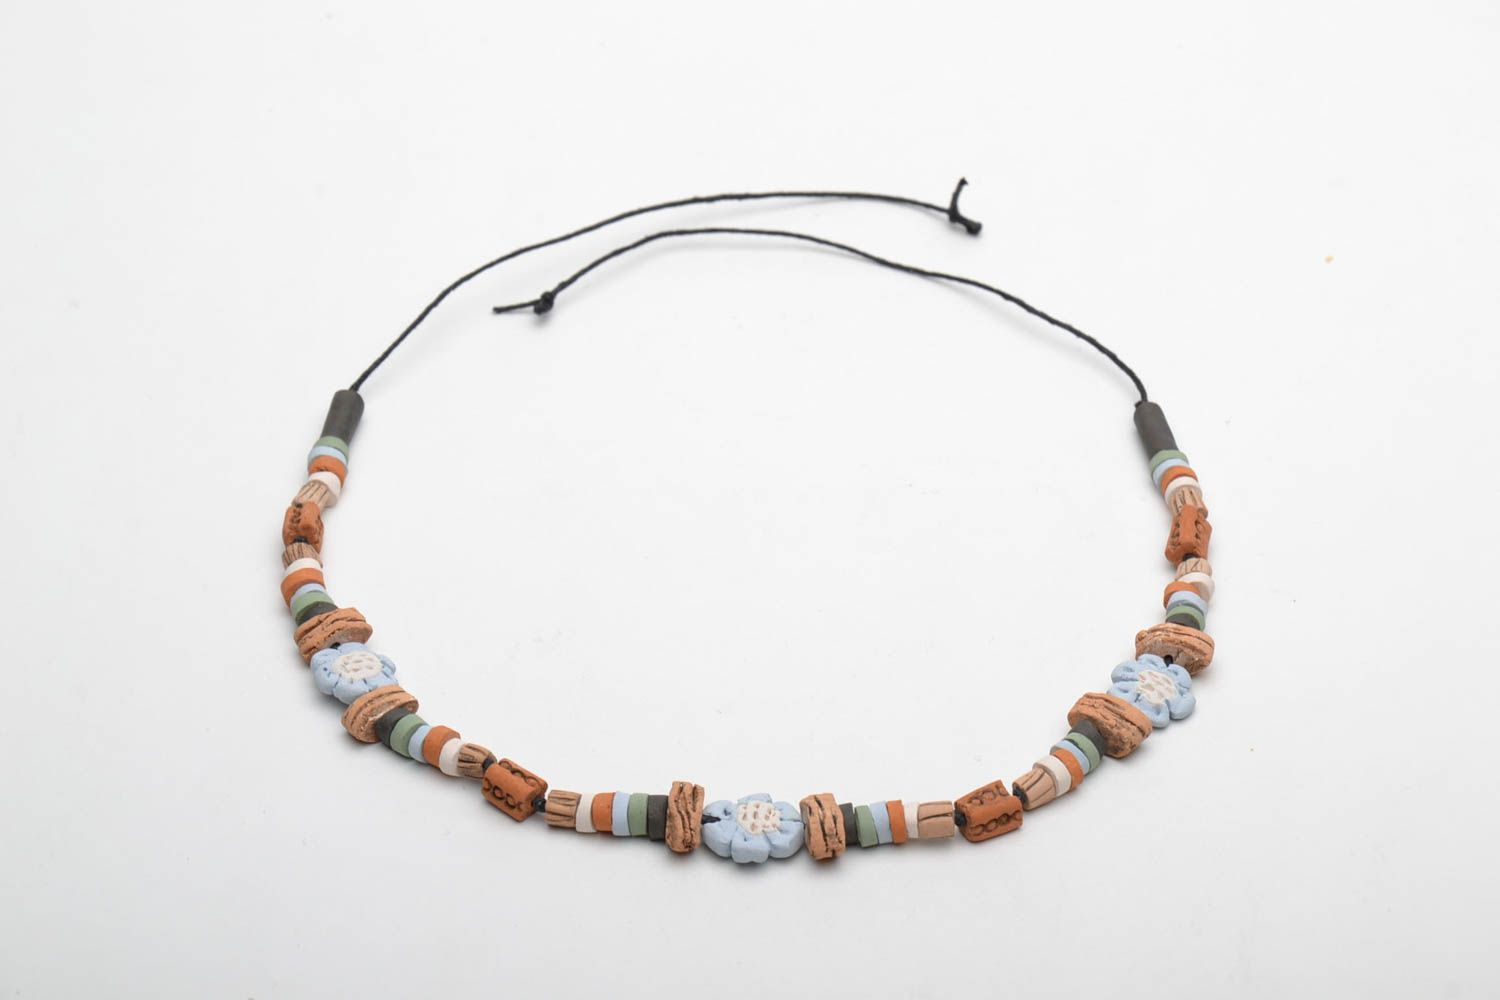 Beautiful ceramic necklace photo 4